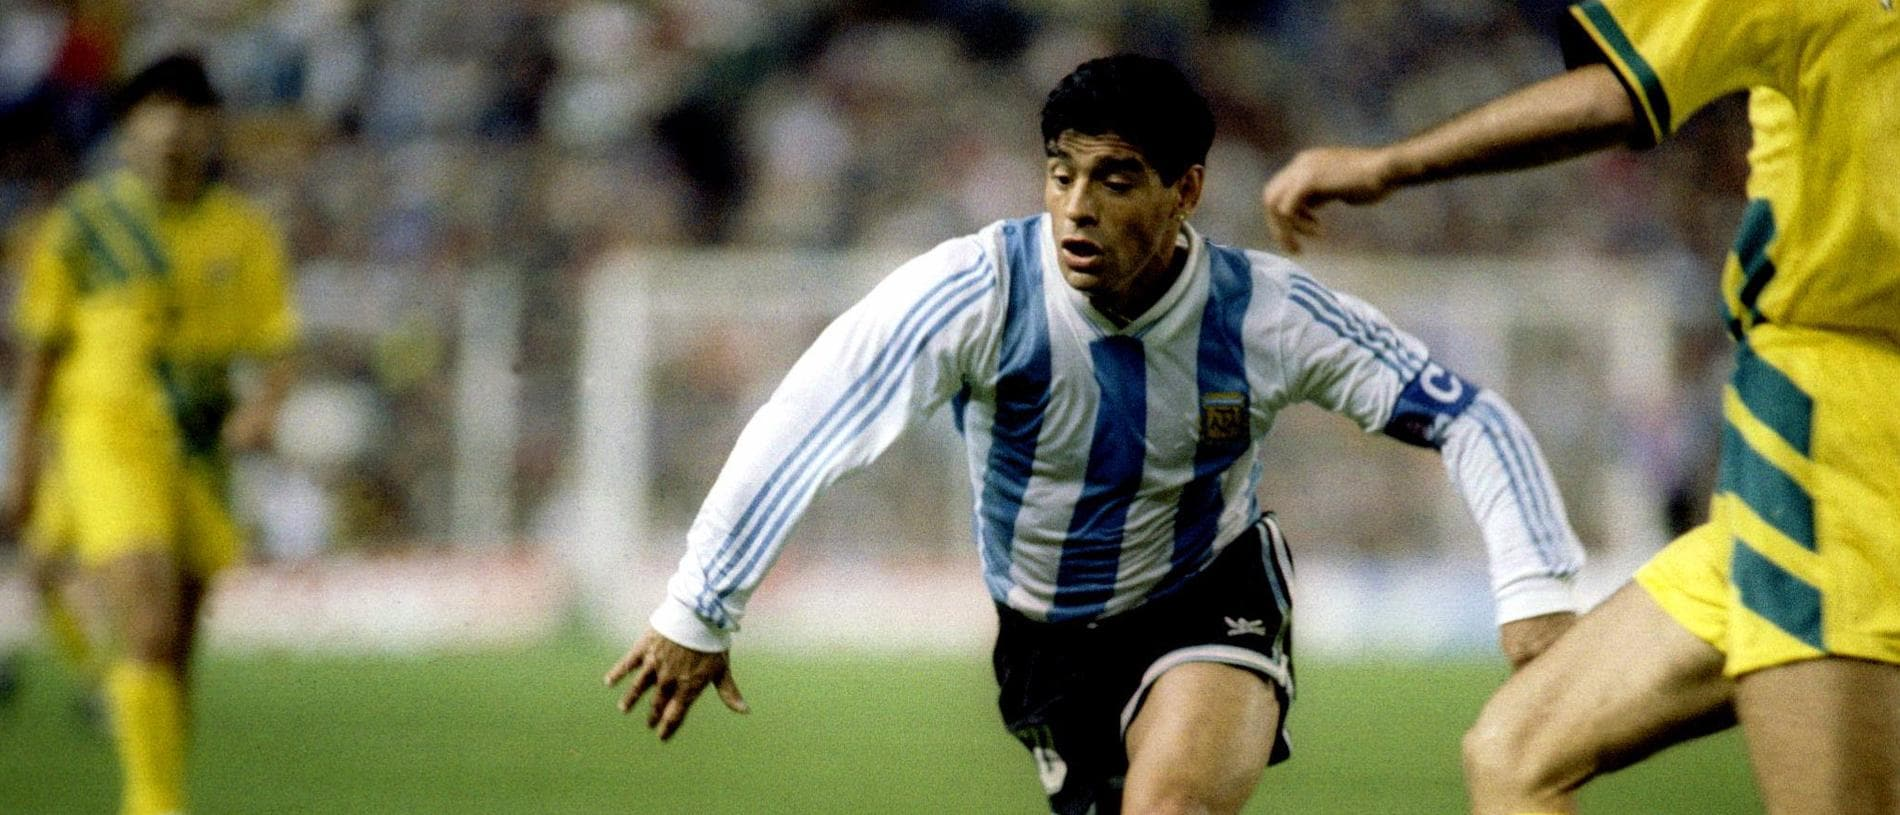 31 OCT 1993: DIEGO MARADONA OF ARGENTINA IN ACTION AGAINST AUSTRALIA DURING A WORLD CUP QUALIFIER IN SYDNEY. Mandatory Credit: Pascal Rondeau/ALLSPORT